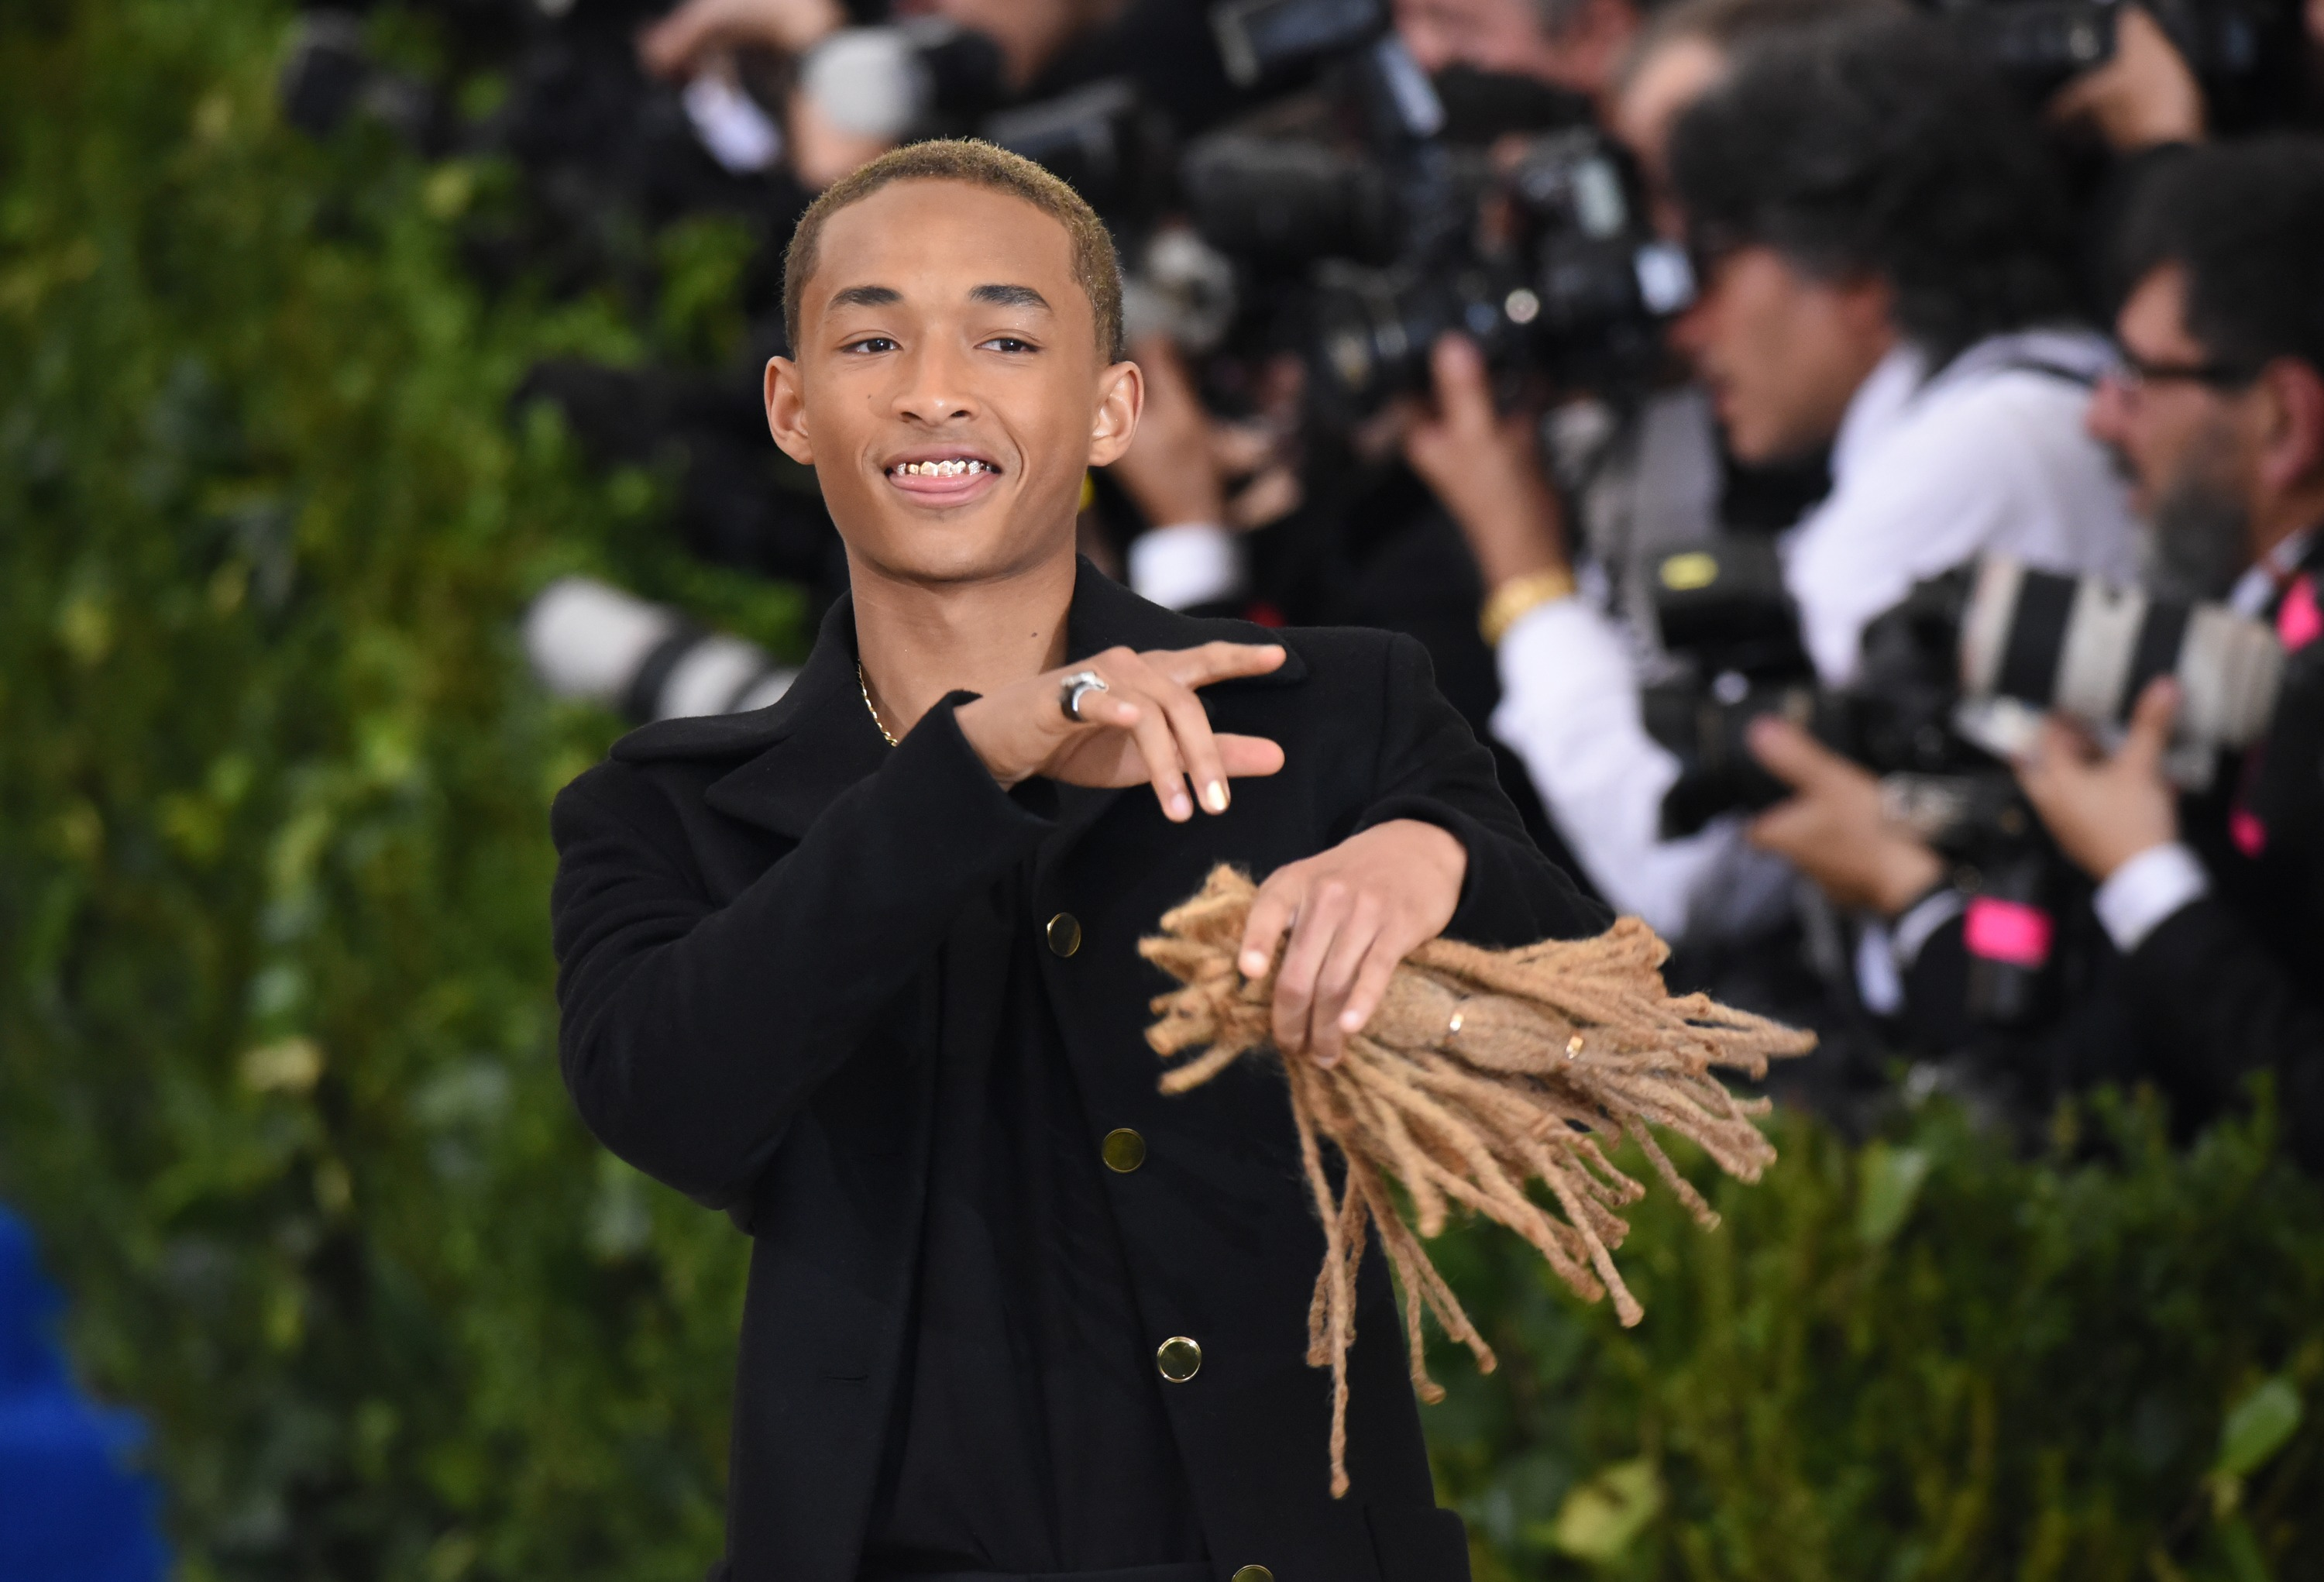 Update: There's a reason Jaden Smith was walking around with his hair at the Met Gala